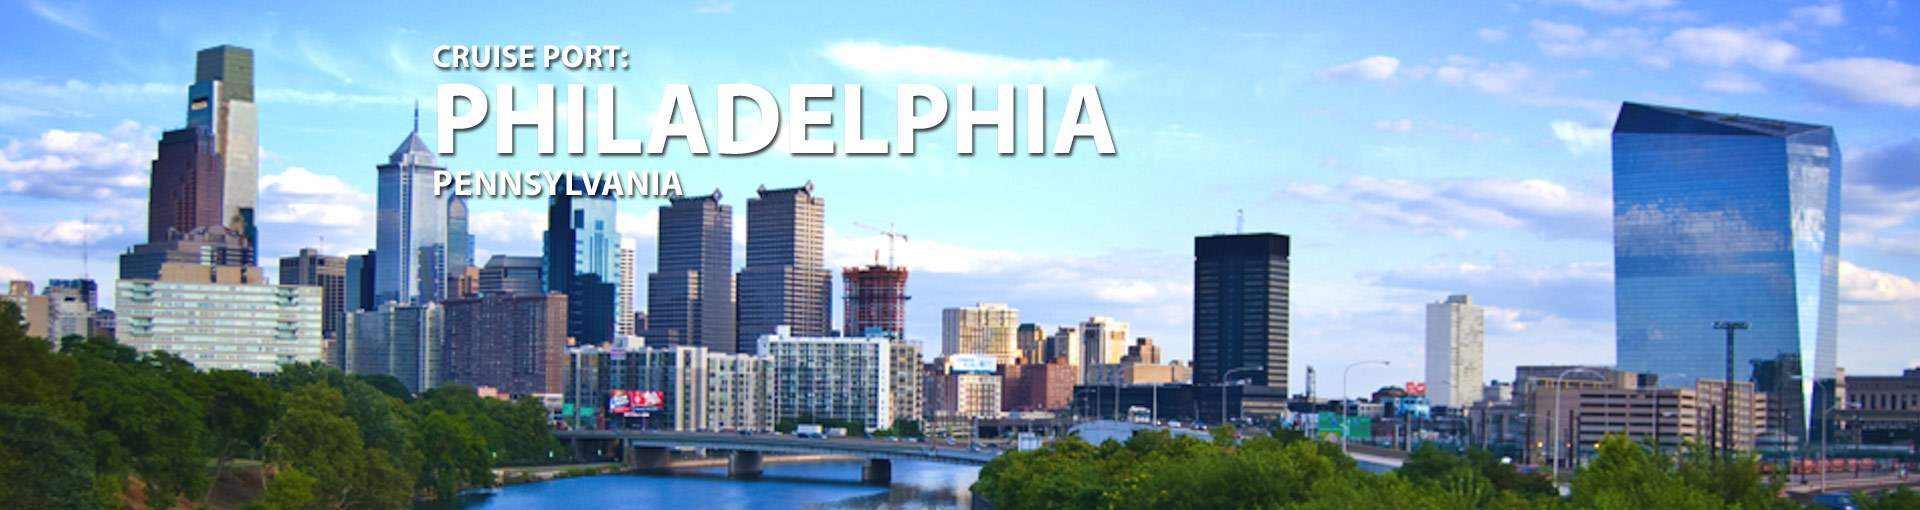 Banner for Philadelphia, Pennsylvania Cruise Port